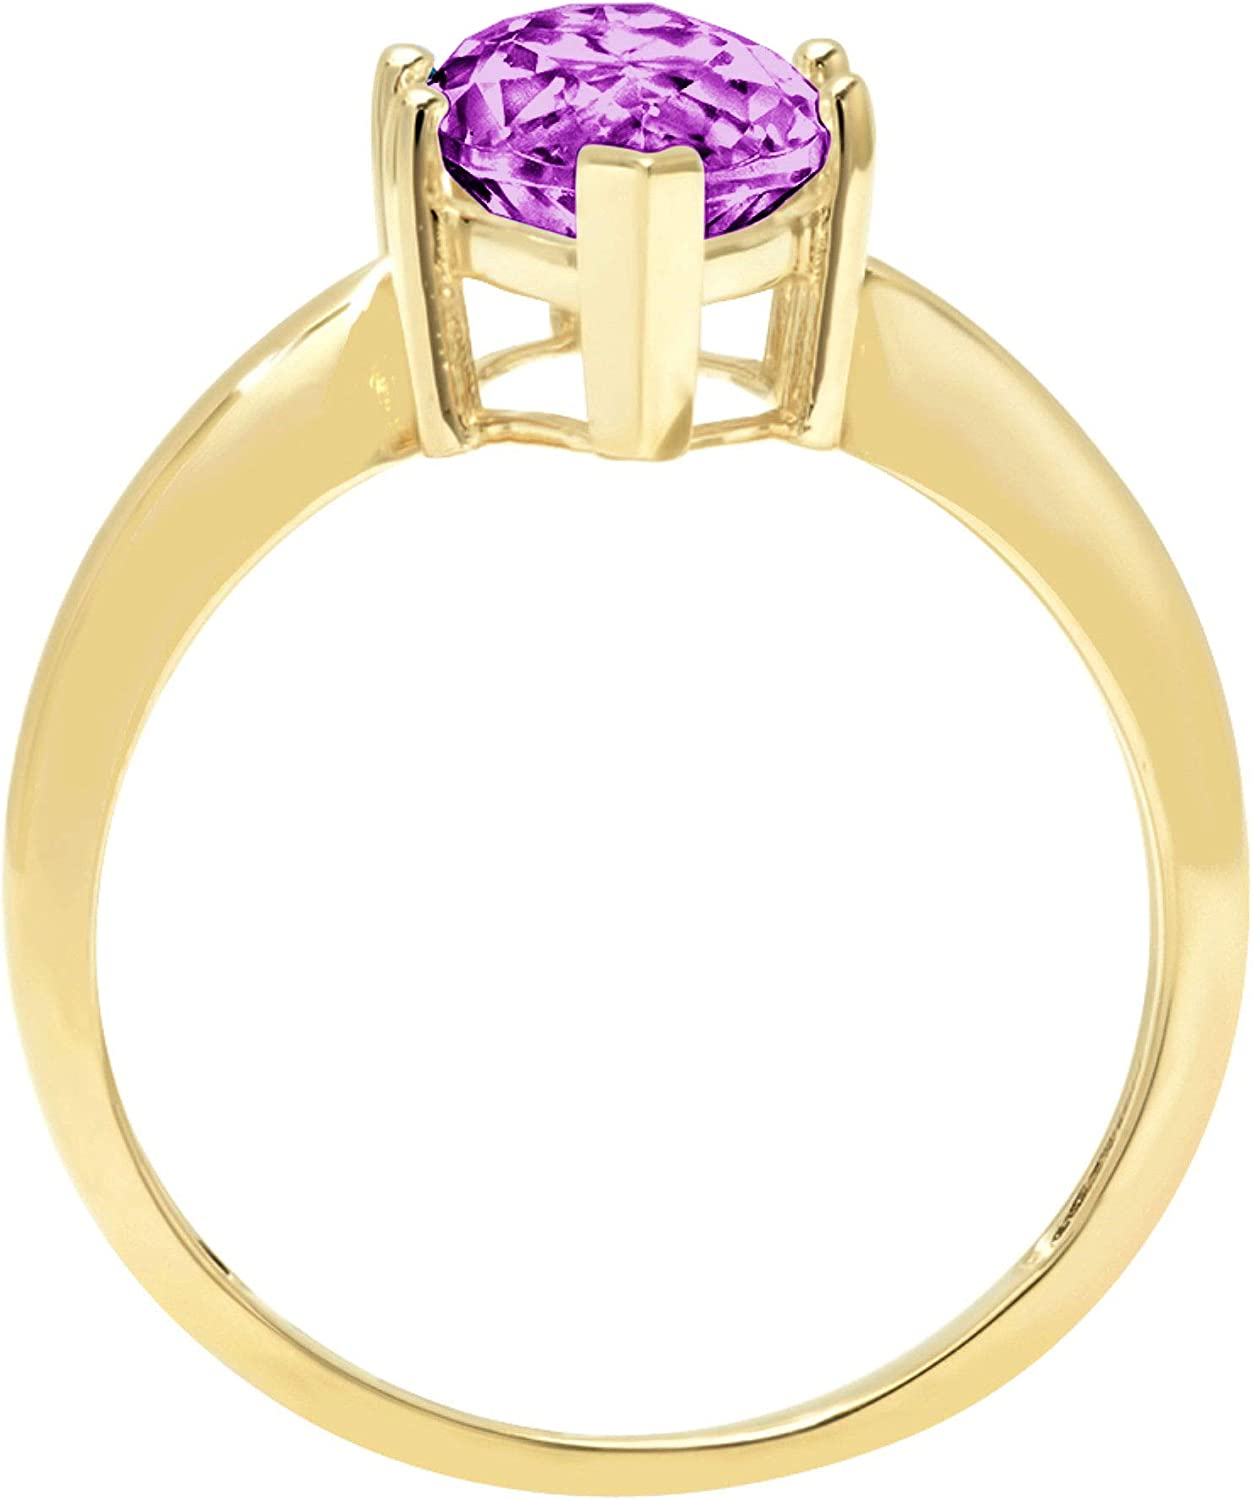 2.45 ct Brilliant Marquise Cut Solitaire Flawless Simulated CZ Purple Alexandrite Ideal VVS1 6-Prong Engagement Wedding Bridal Promise Anniversary Designer Ring Solid 14k Yellow Gold for Women